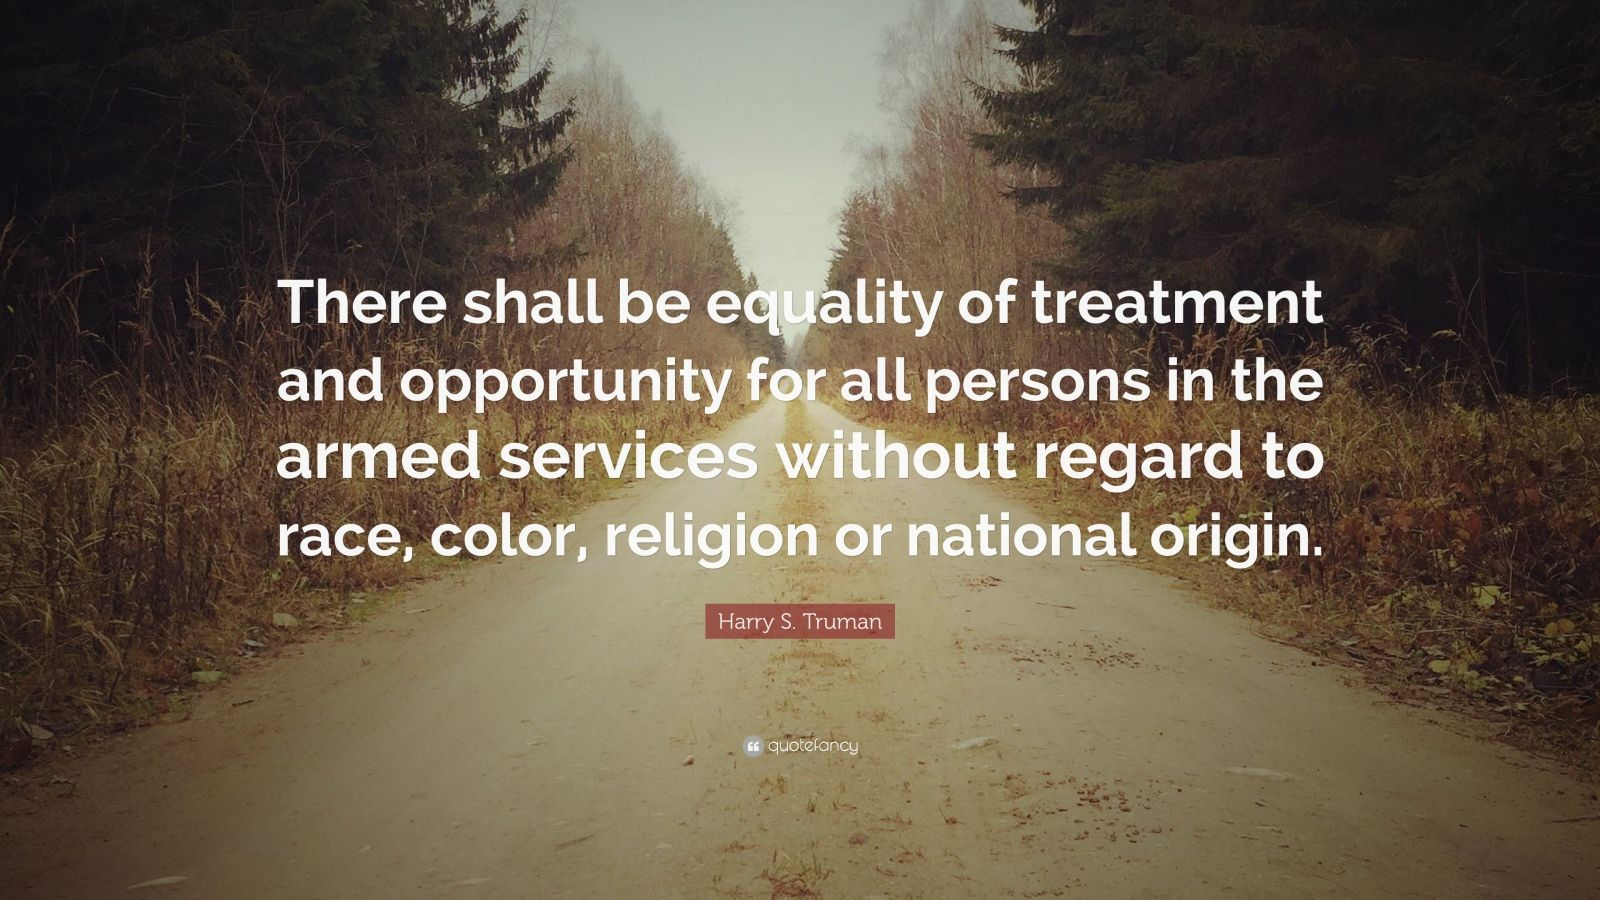 harry s truman quote there shall be equality of treatment and opportunity for